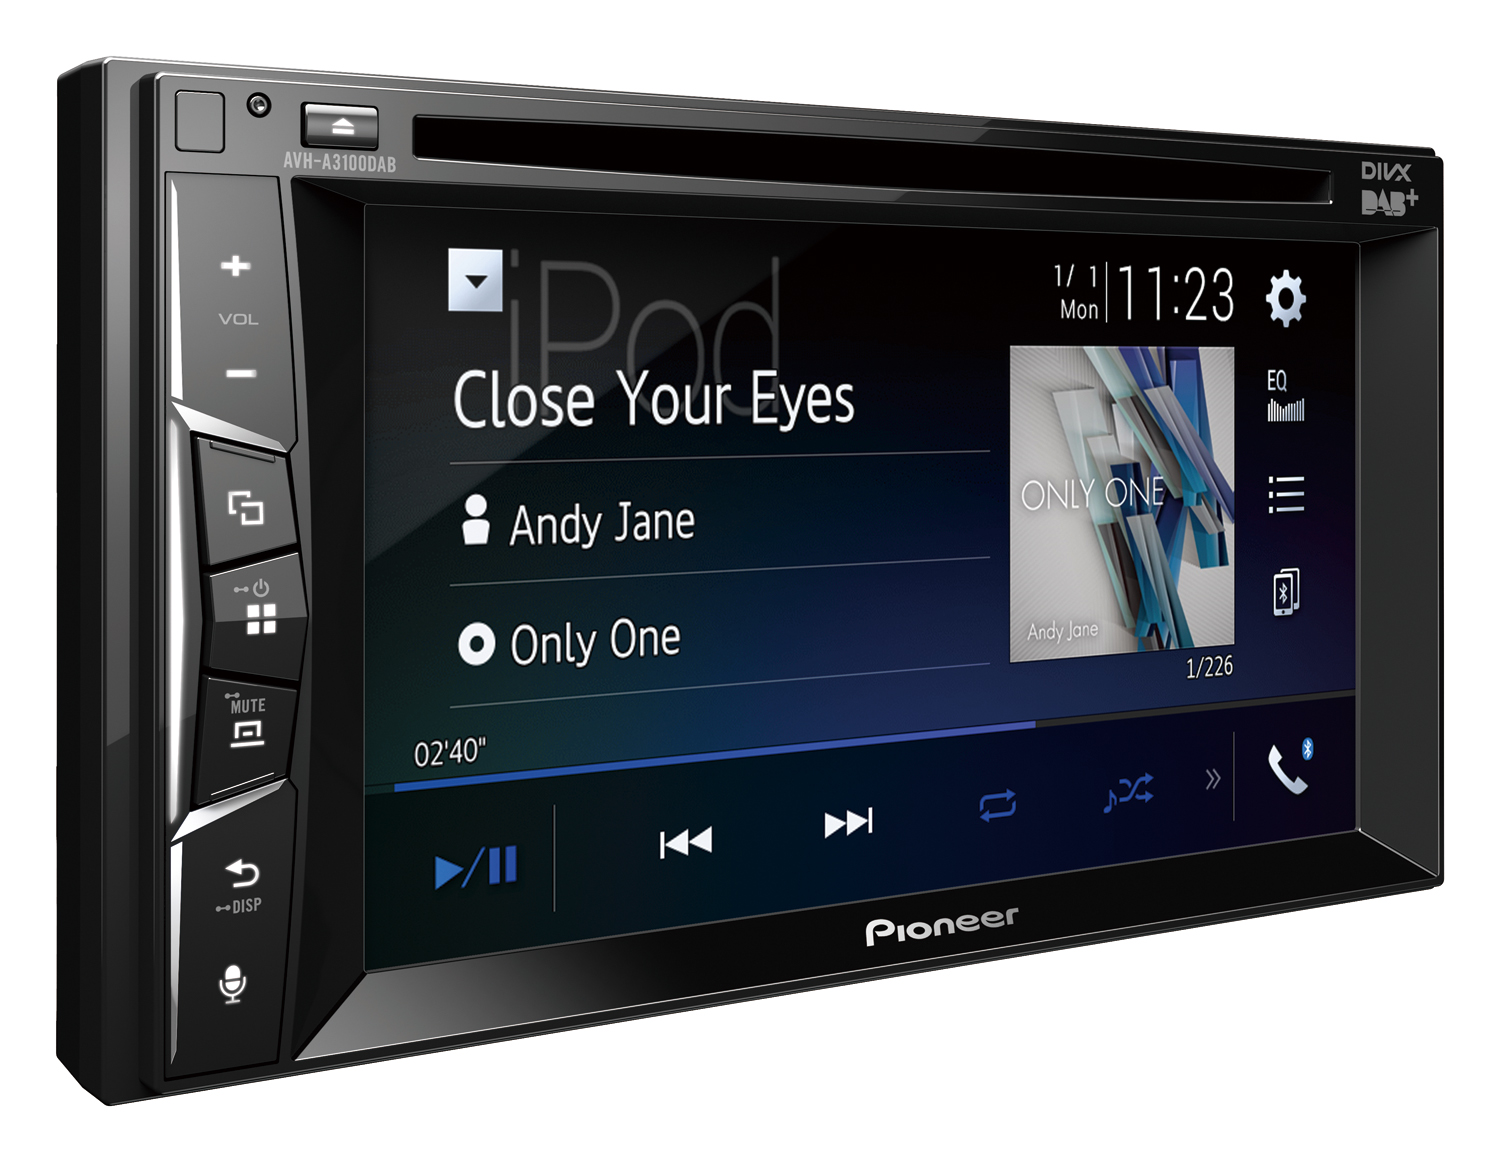 pioneer avh a3100dab 2 din bluetooth dab usb. Black Bedroom Furniture Sets. Home Design Ideas